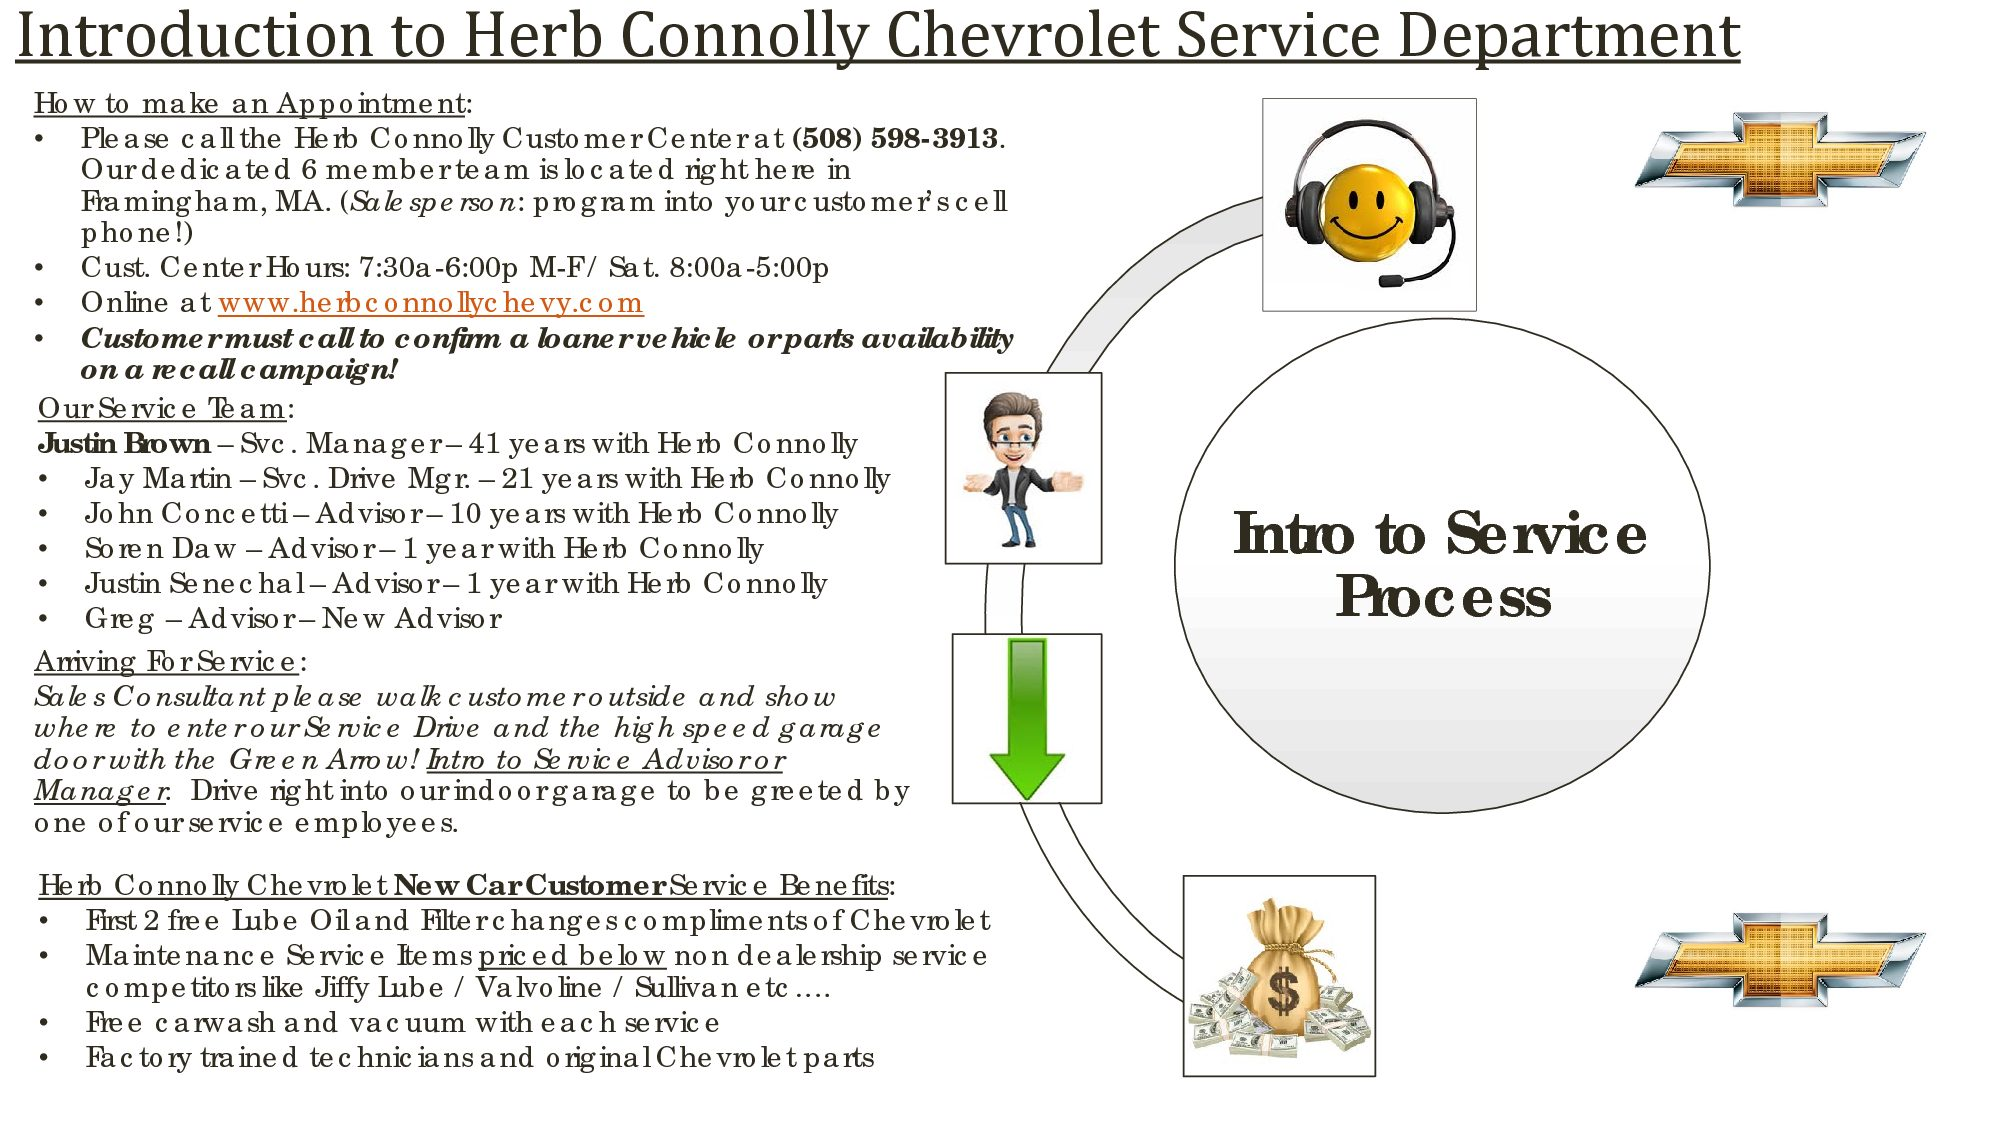 Service Auto Repair Department Herb Connolly Chevrolet